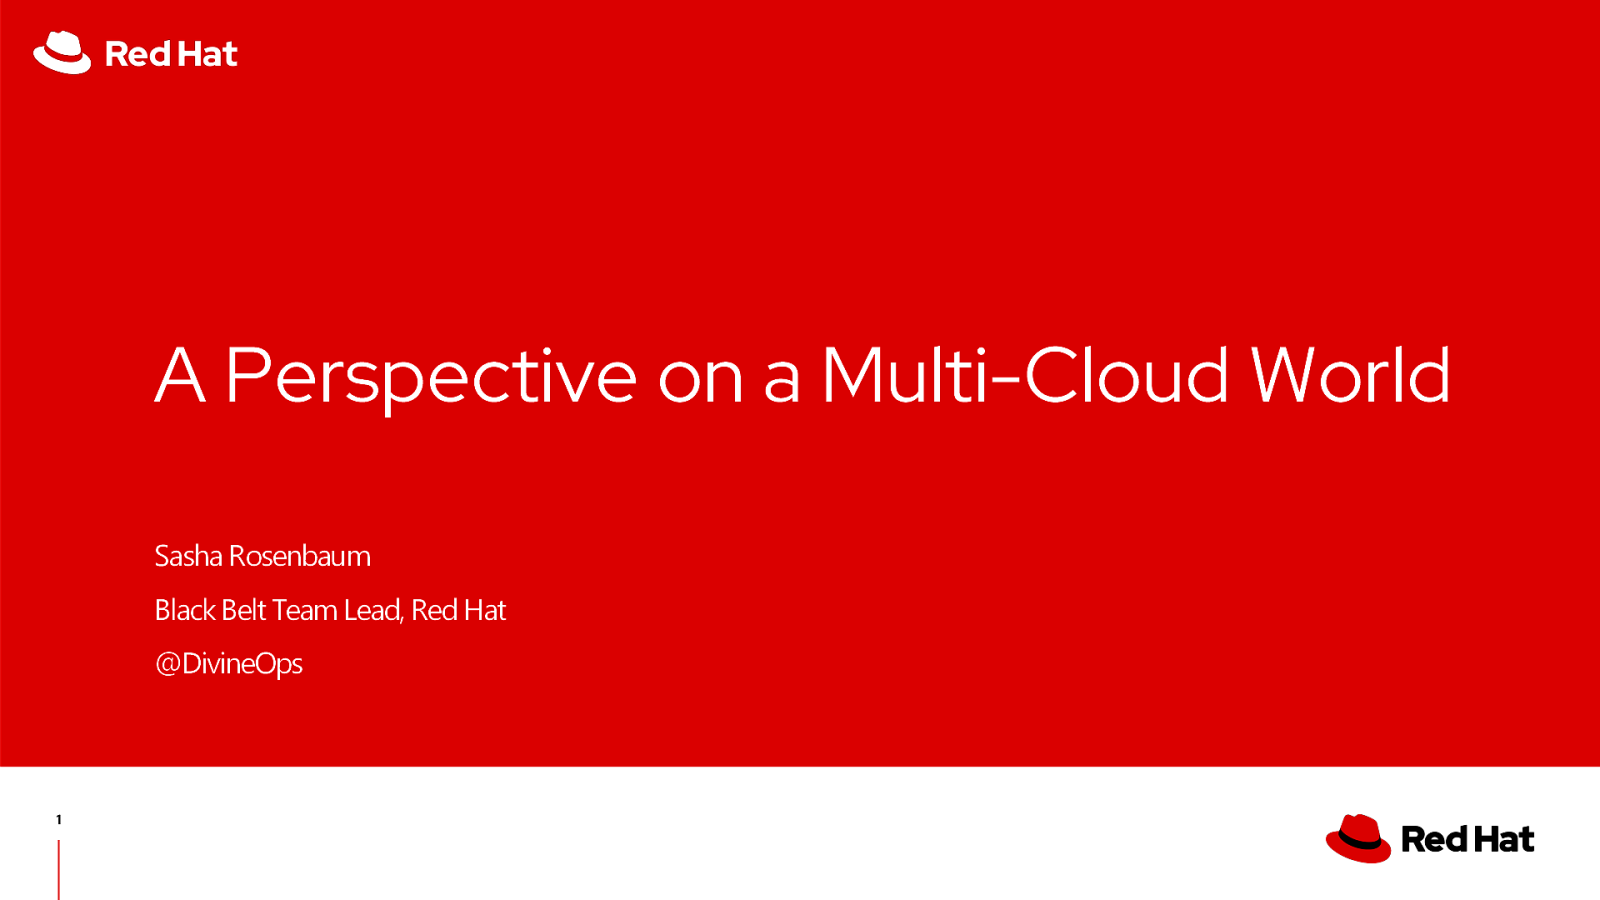 A perspective on the Multi-Cloud world